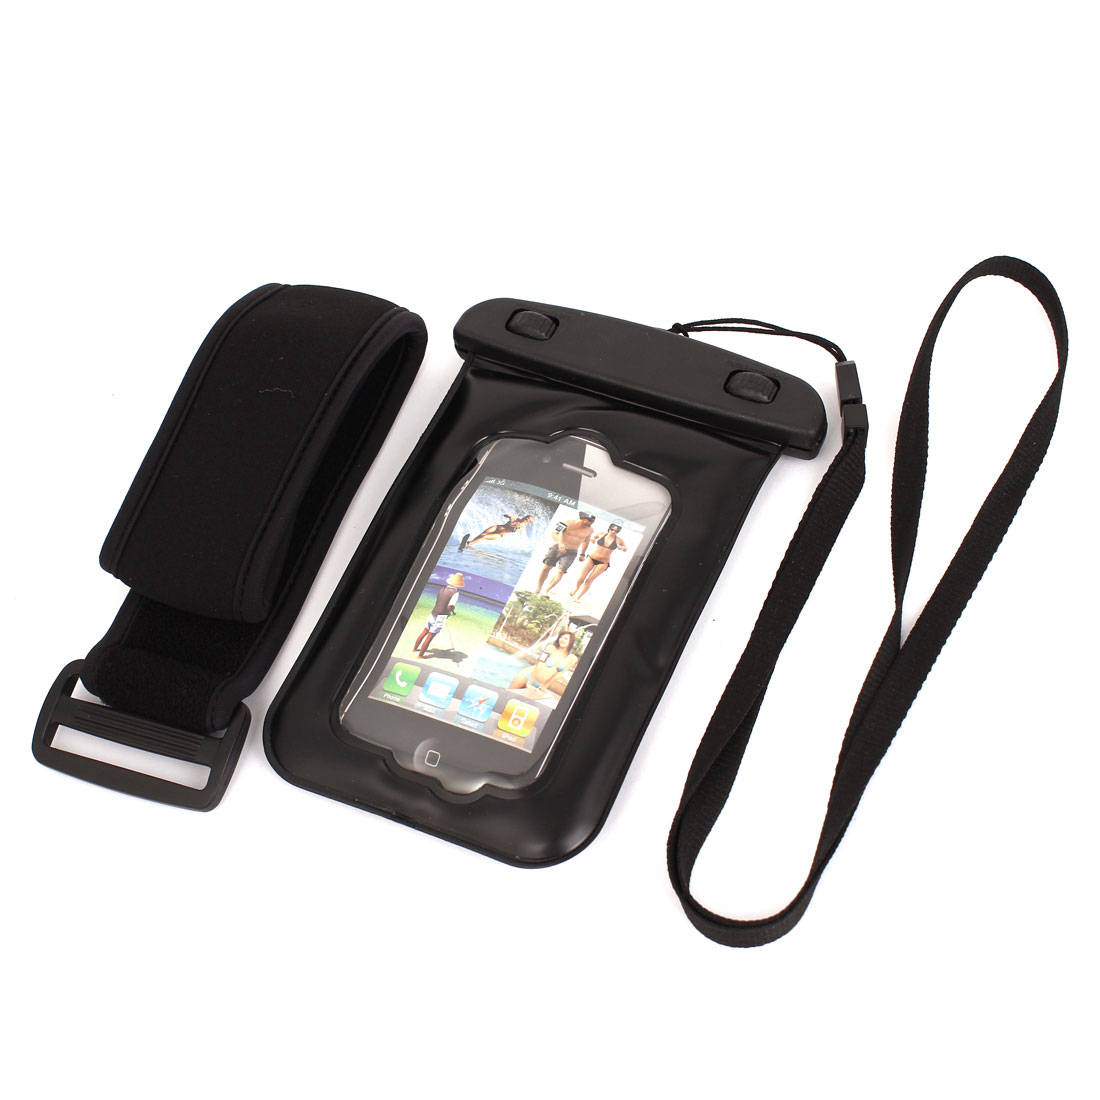 "Waterproof Case Dry Bag Skin Cover Pouch + Earplug Black for 4"" Cell Phone"